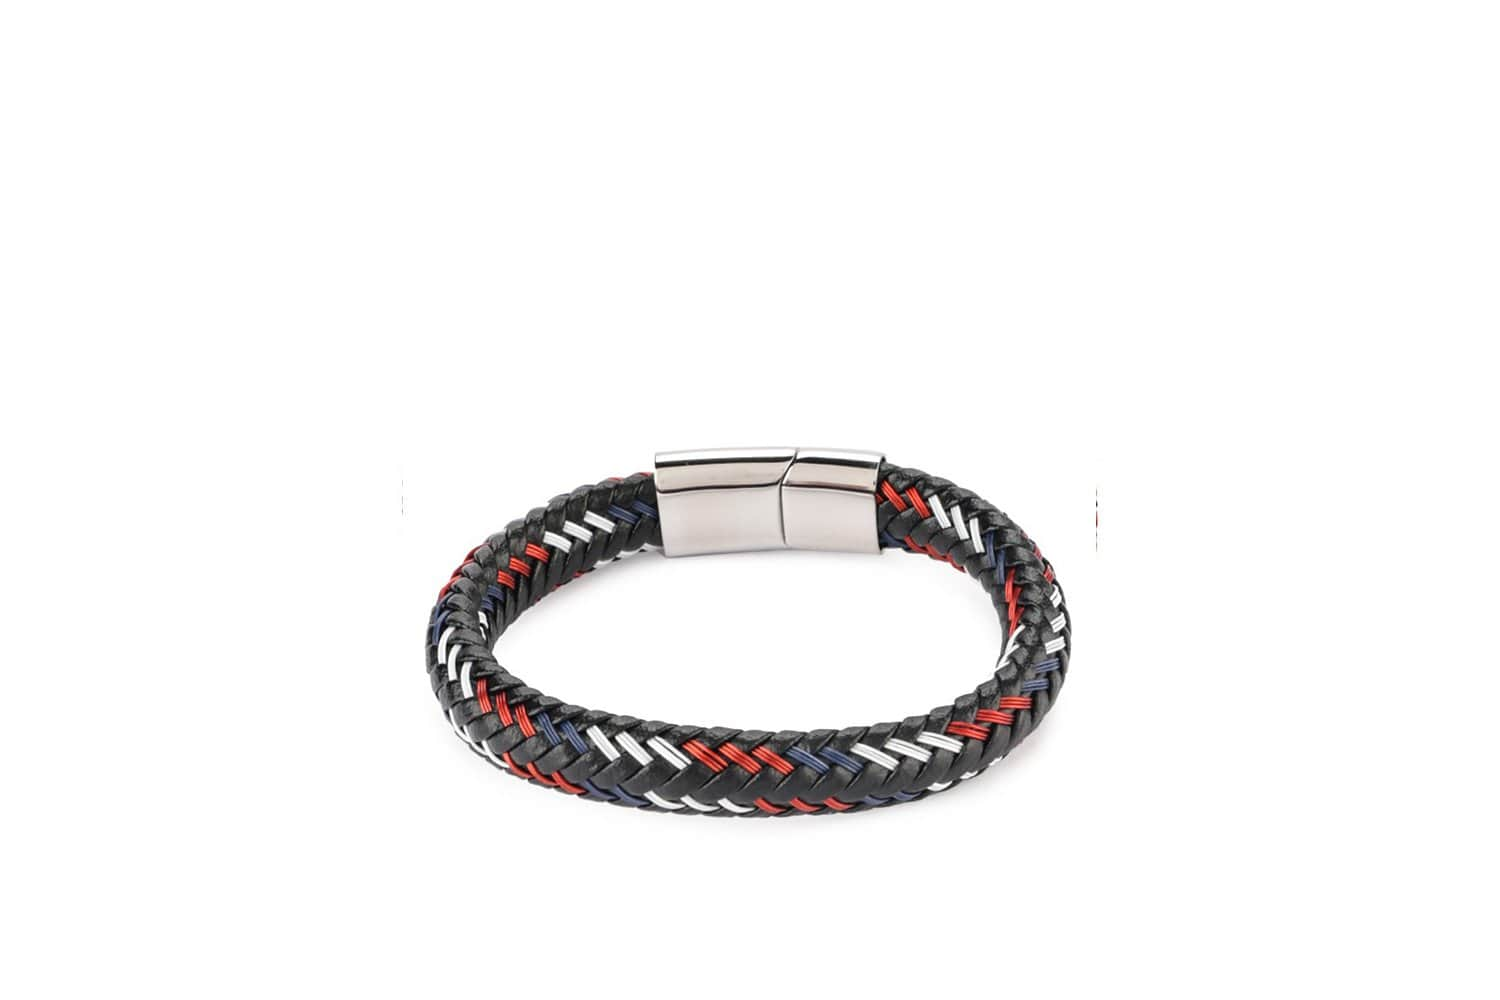 Multi-Strand Woven Leather Bracelet - Multi Bracelets - Urban State Indonesia